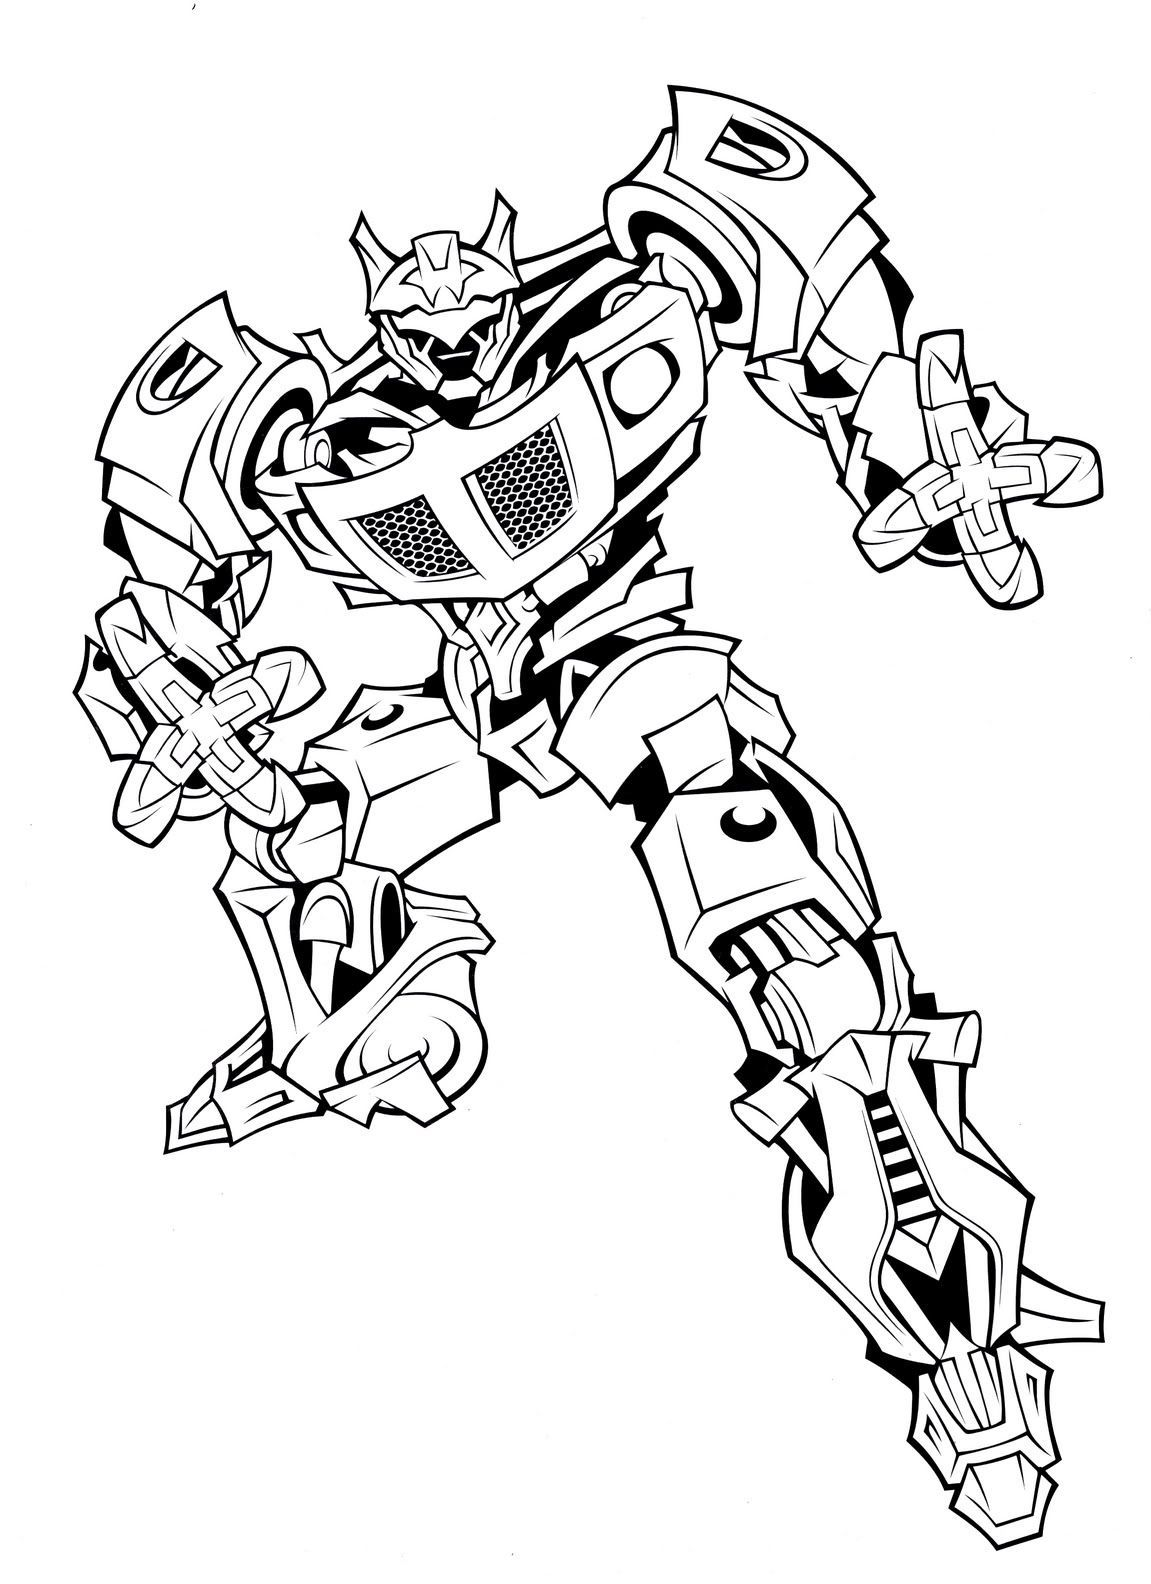 Cool Transformers Coloring Pages For Kids Printable Free Coloring Sheets Bee Coloring Pages Transformers Coloring Pages Coloring Pages